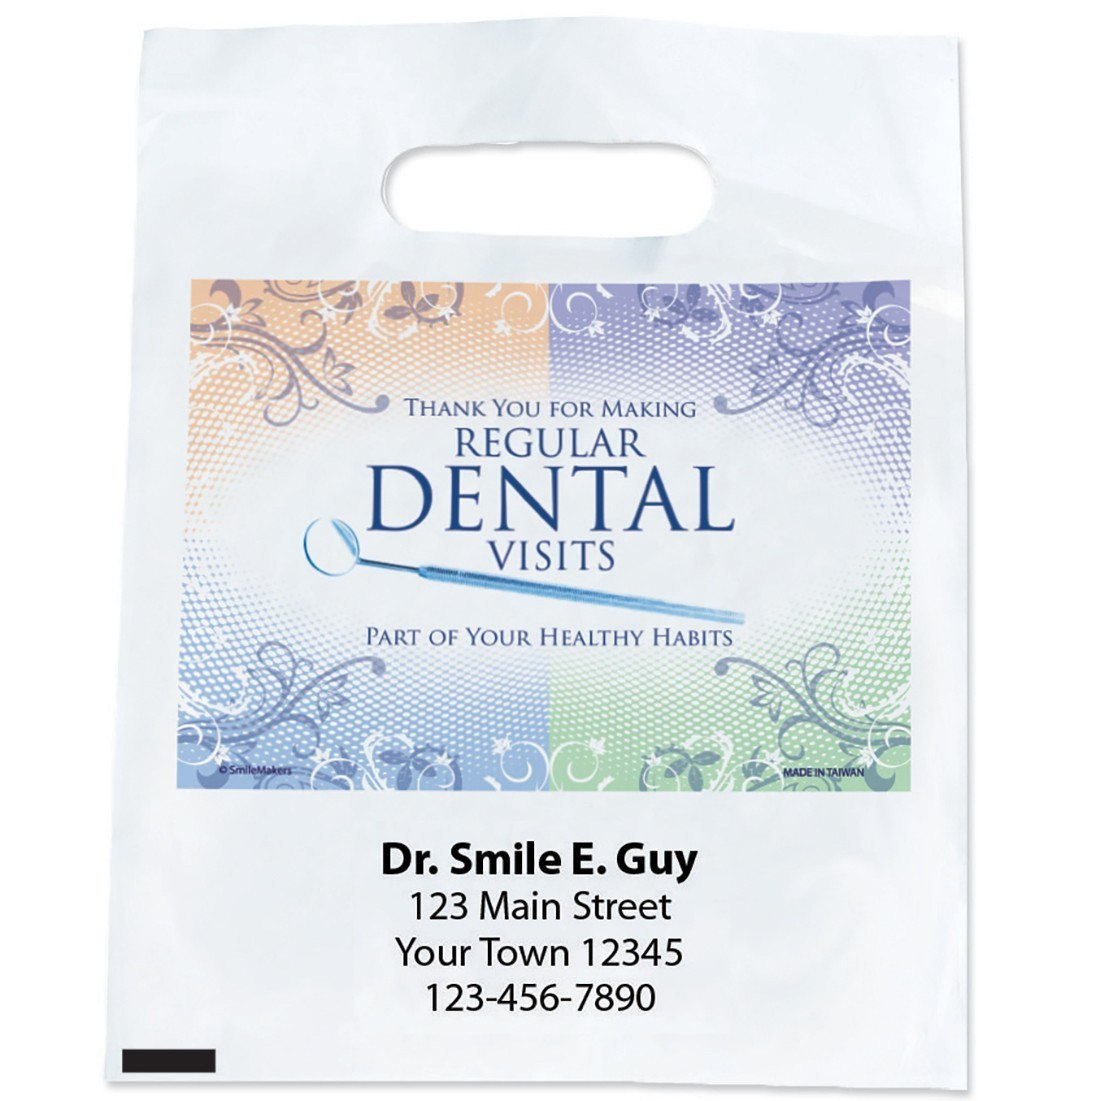 Custom Regular Dental Visits Bags                  [image]